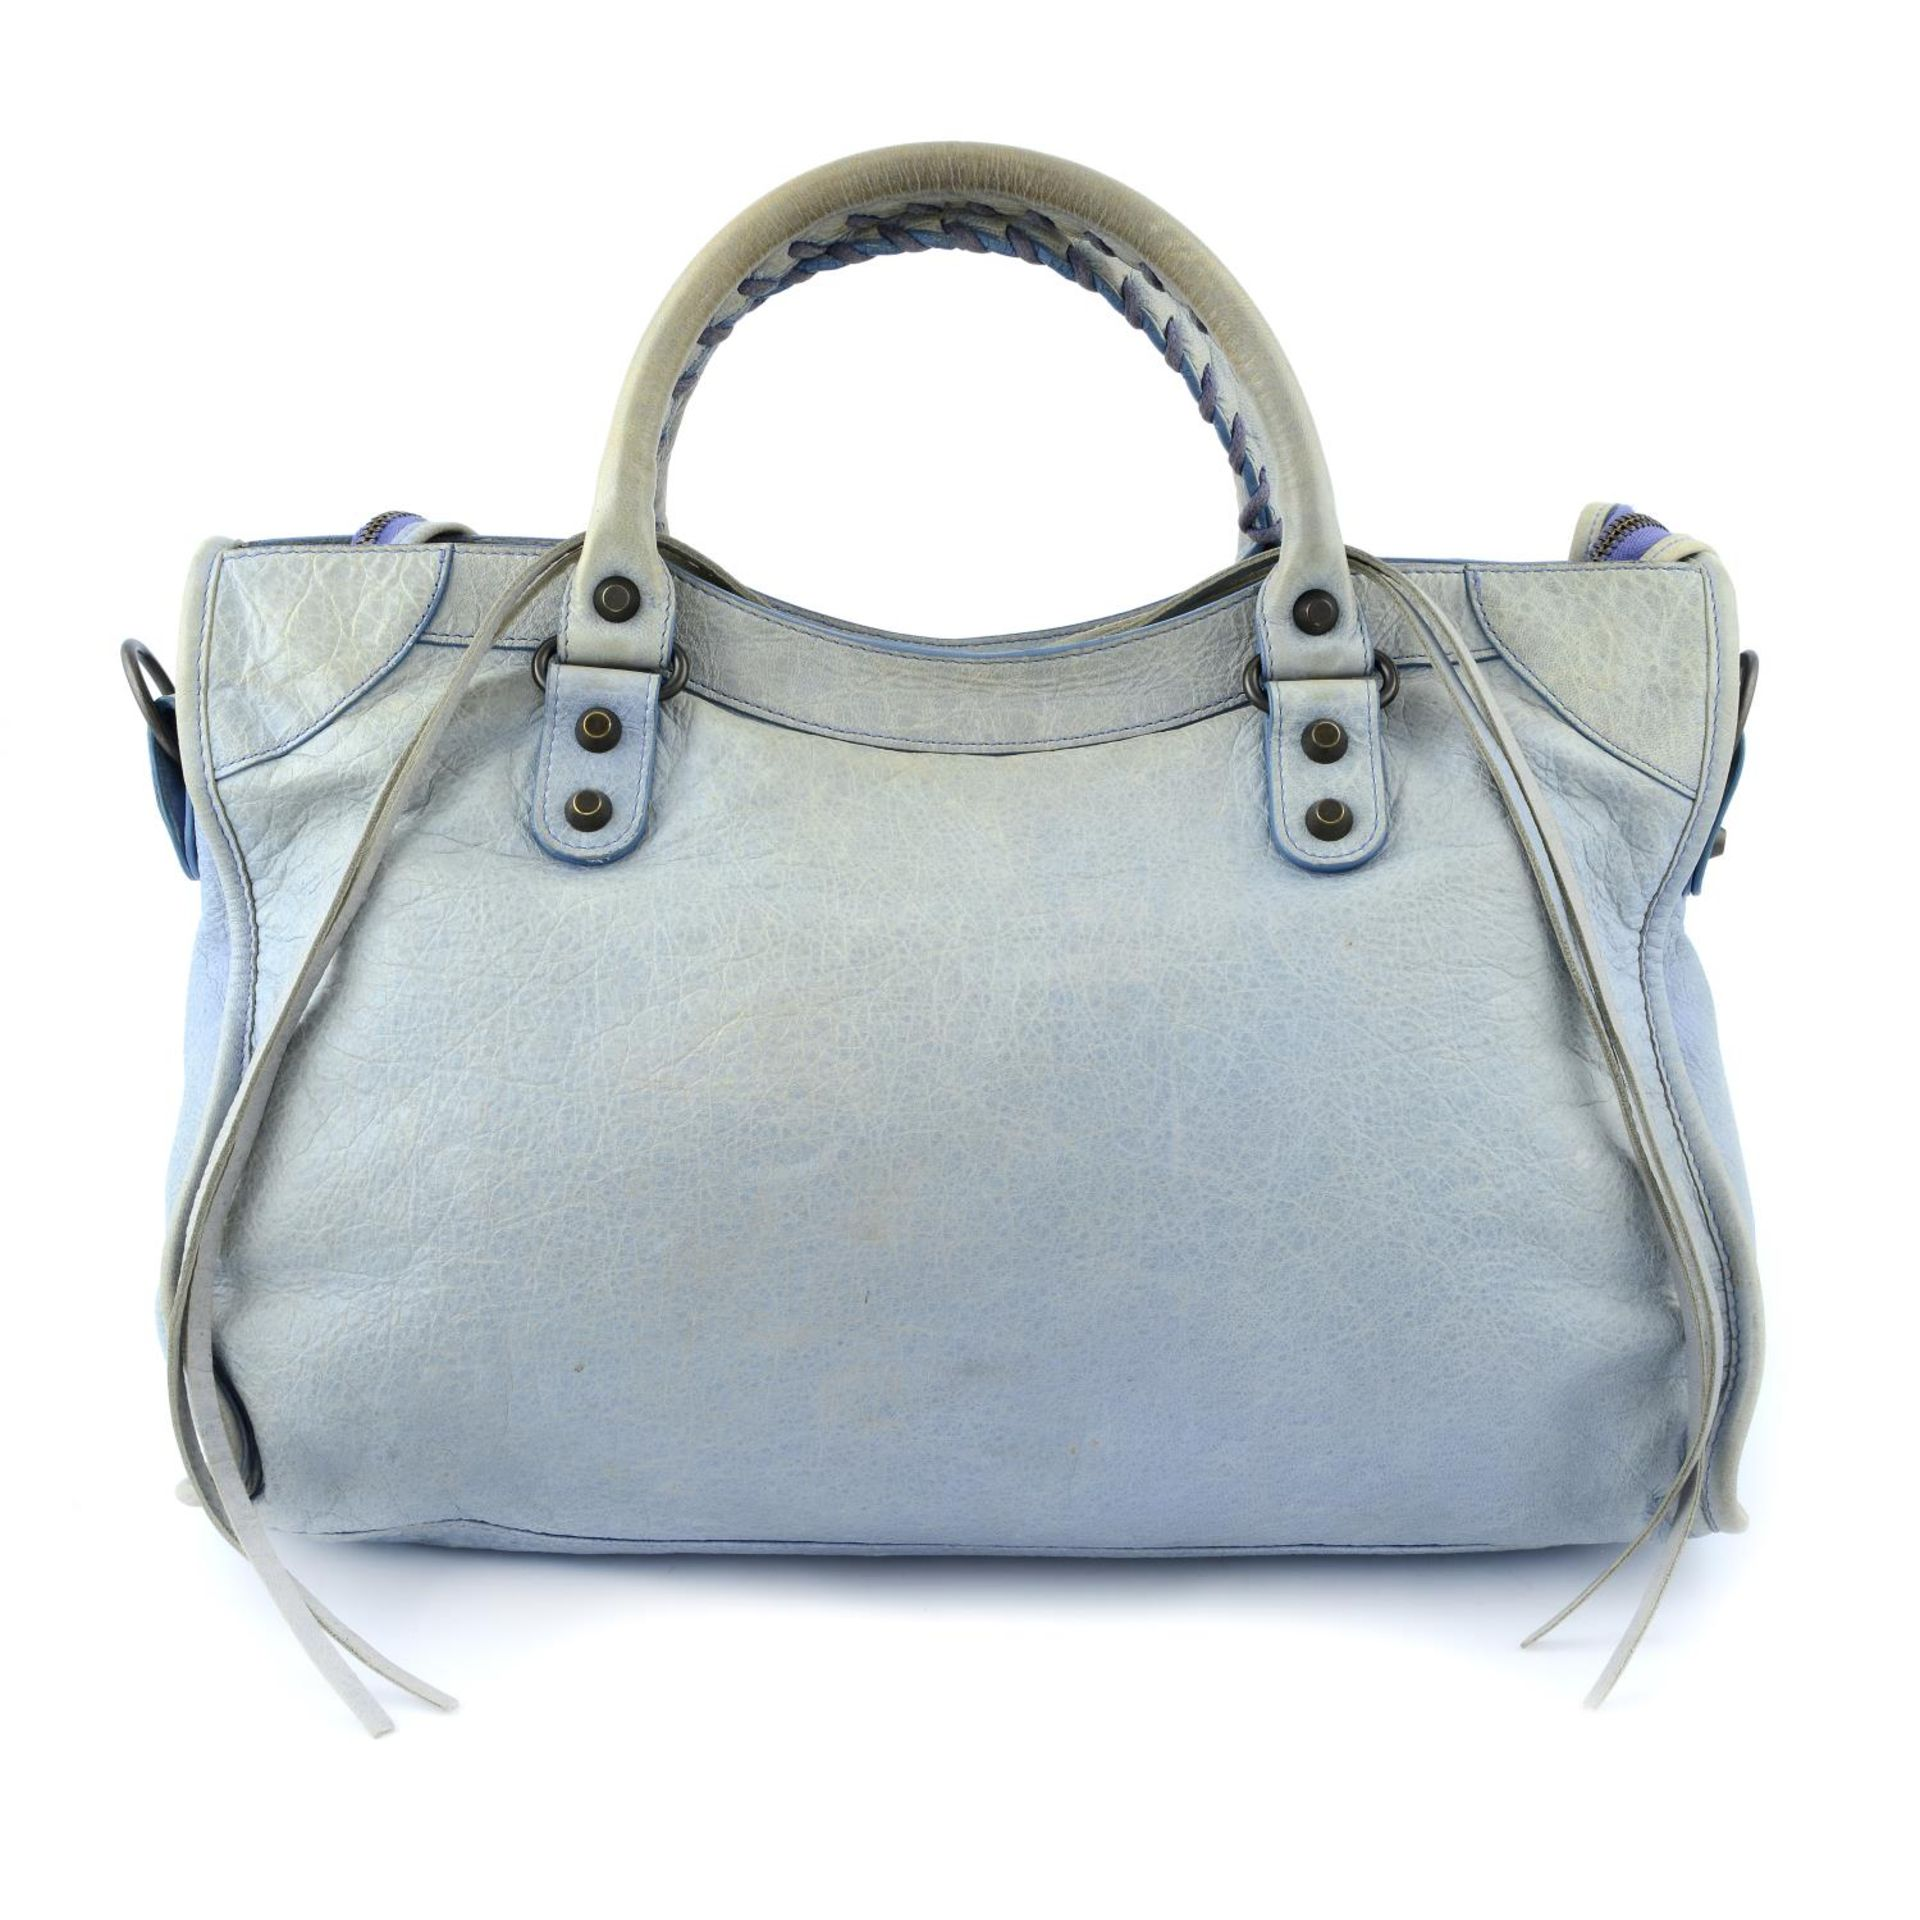 BALENCIAGA - a light blue Classic City handbag. - Image 2 of 6